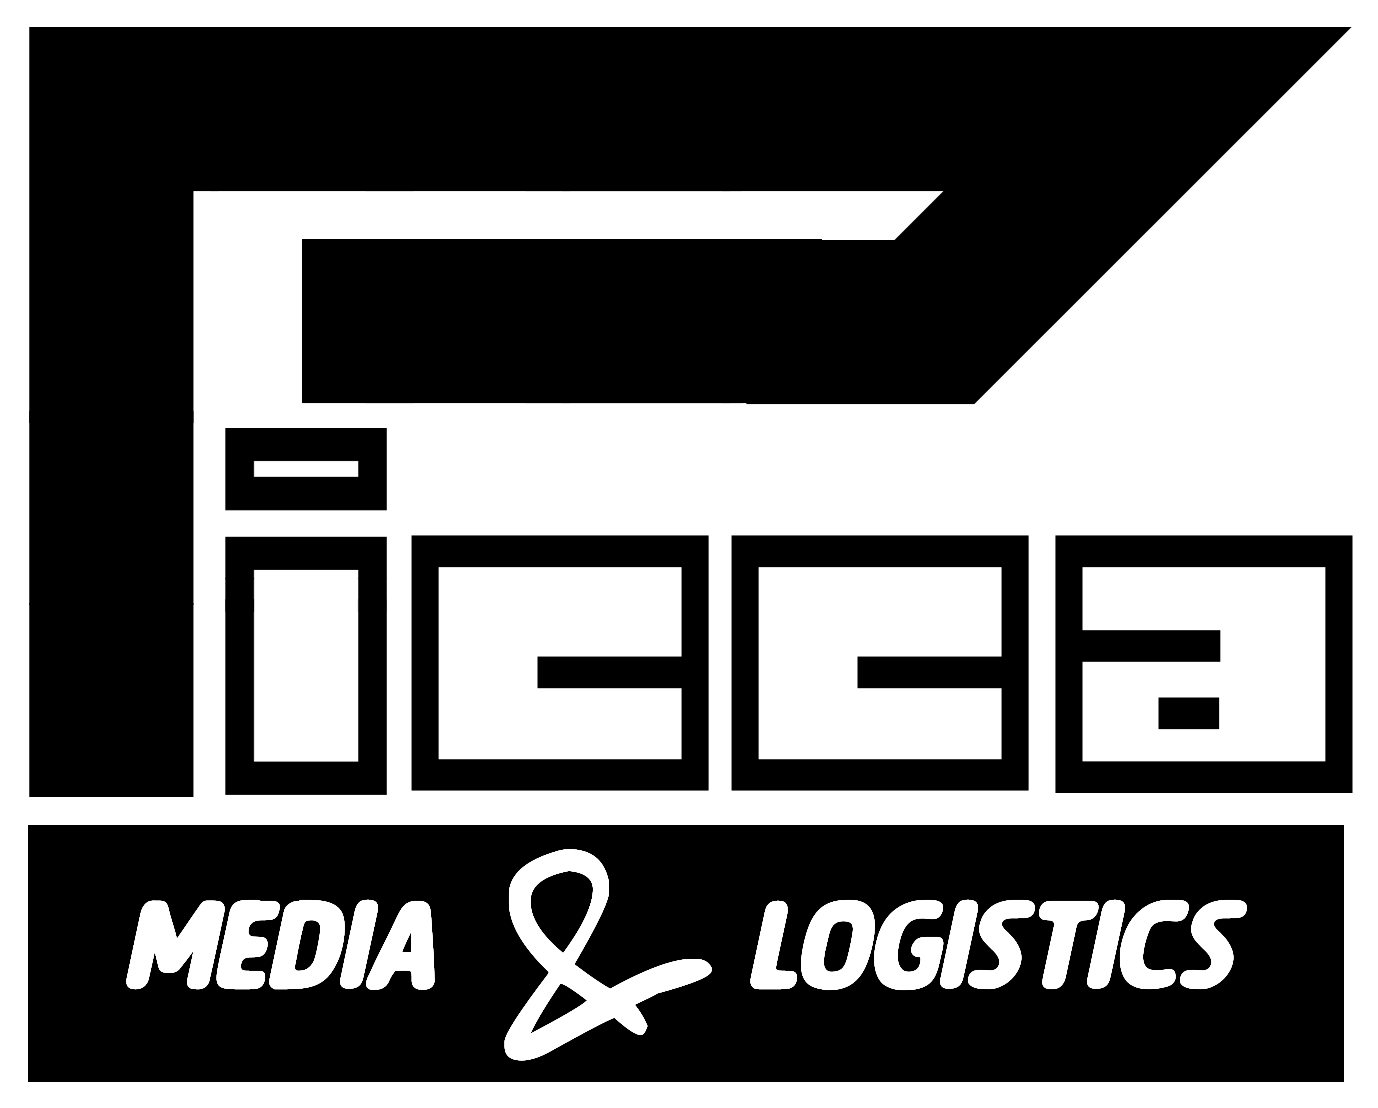 Picca Media and Logistics